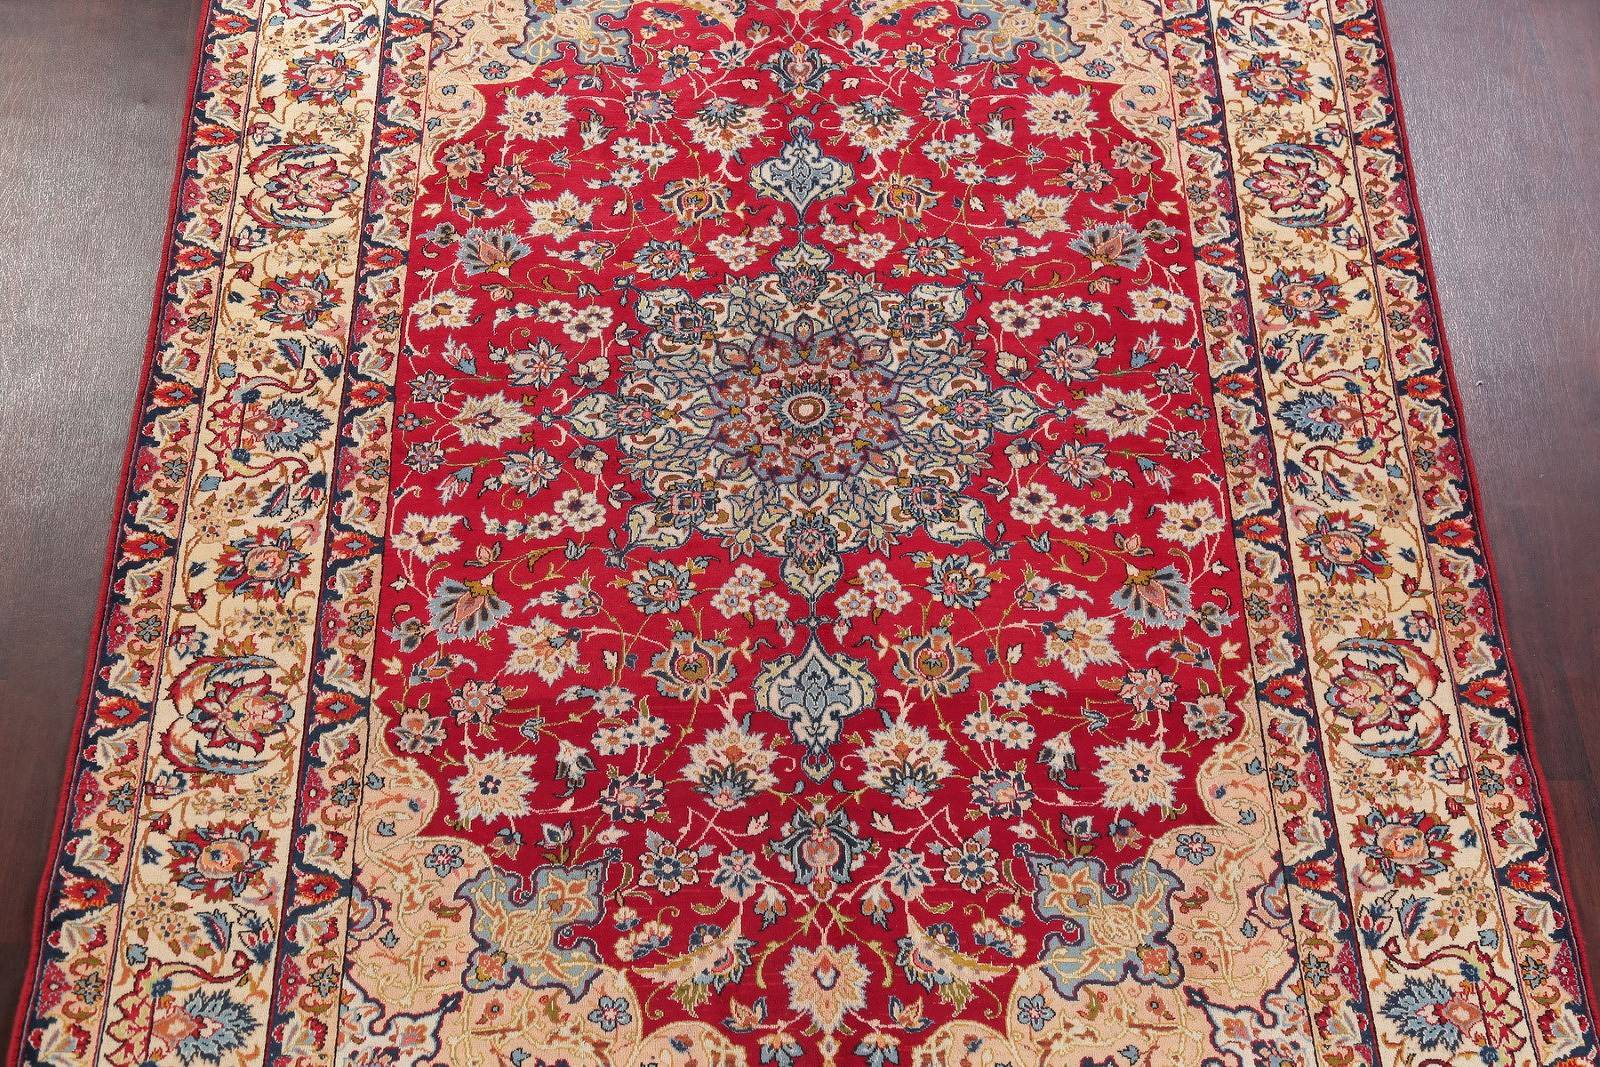 Hand-Knotted Red Floral Isfahan Persian Area Rug Wool 8x11